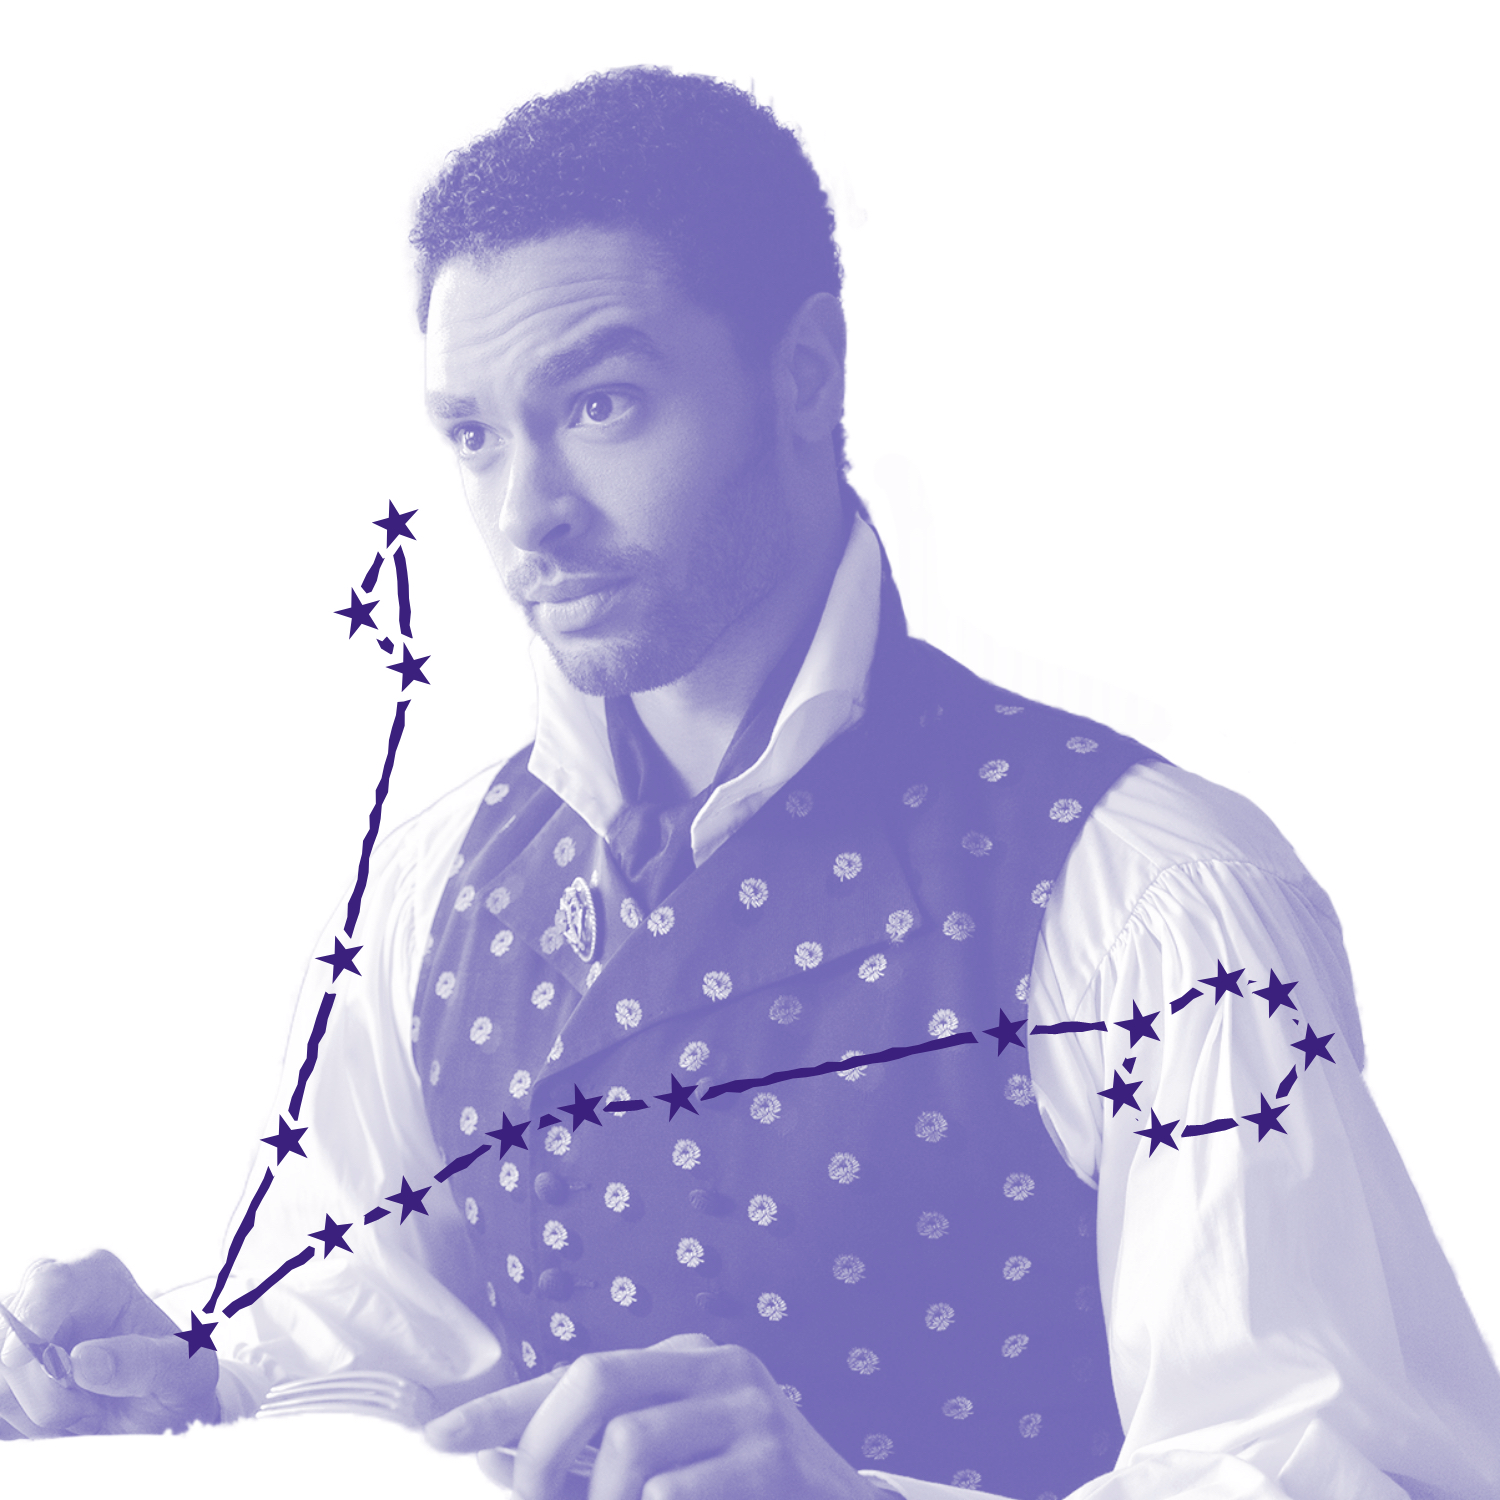 Simon Baset (played by Regé-Jean Page) wears an impenetrable expression that far overshadows his heavily patterned vest and puff-sleeved shirt. Over the image is an illustration of Simon's zodiac constellation.